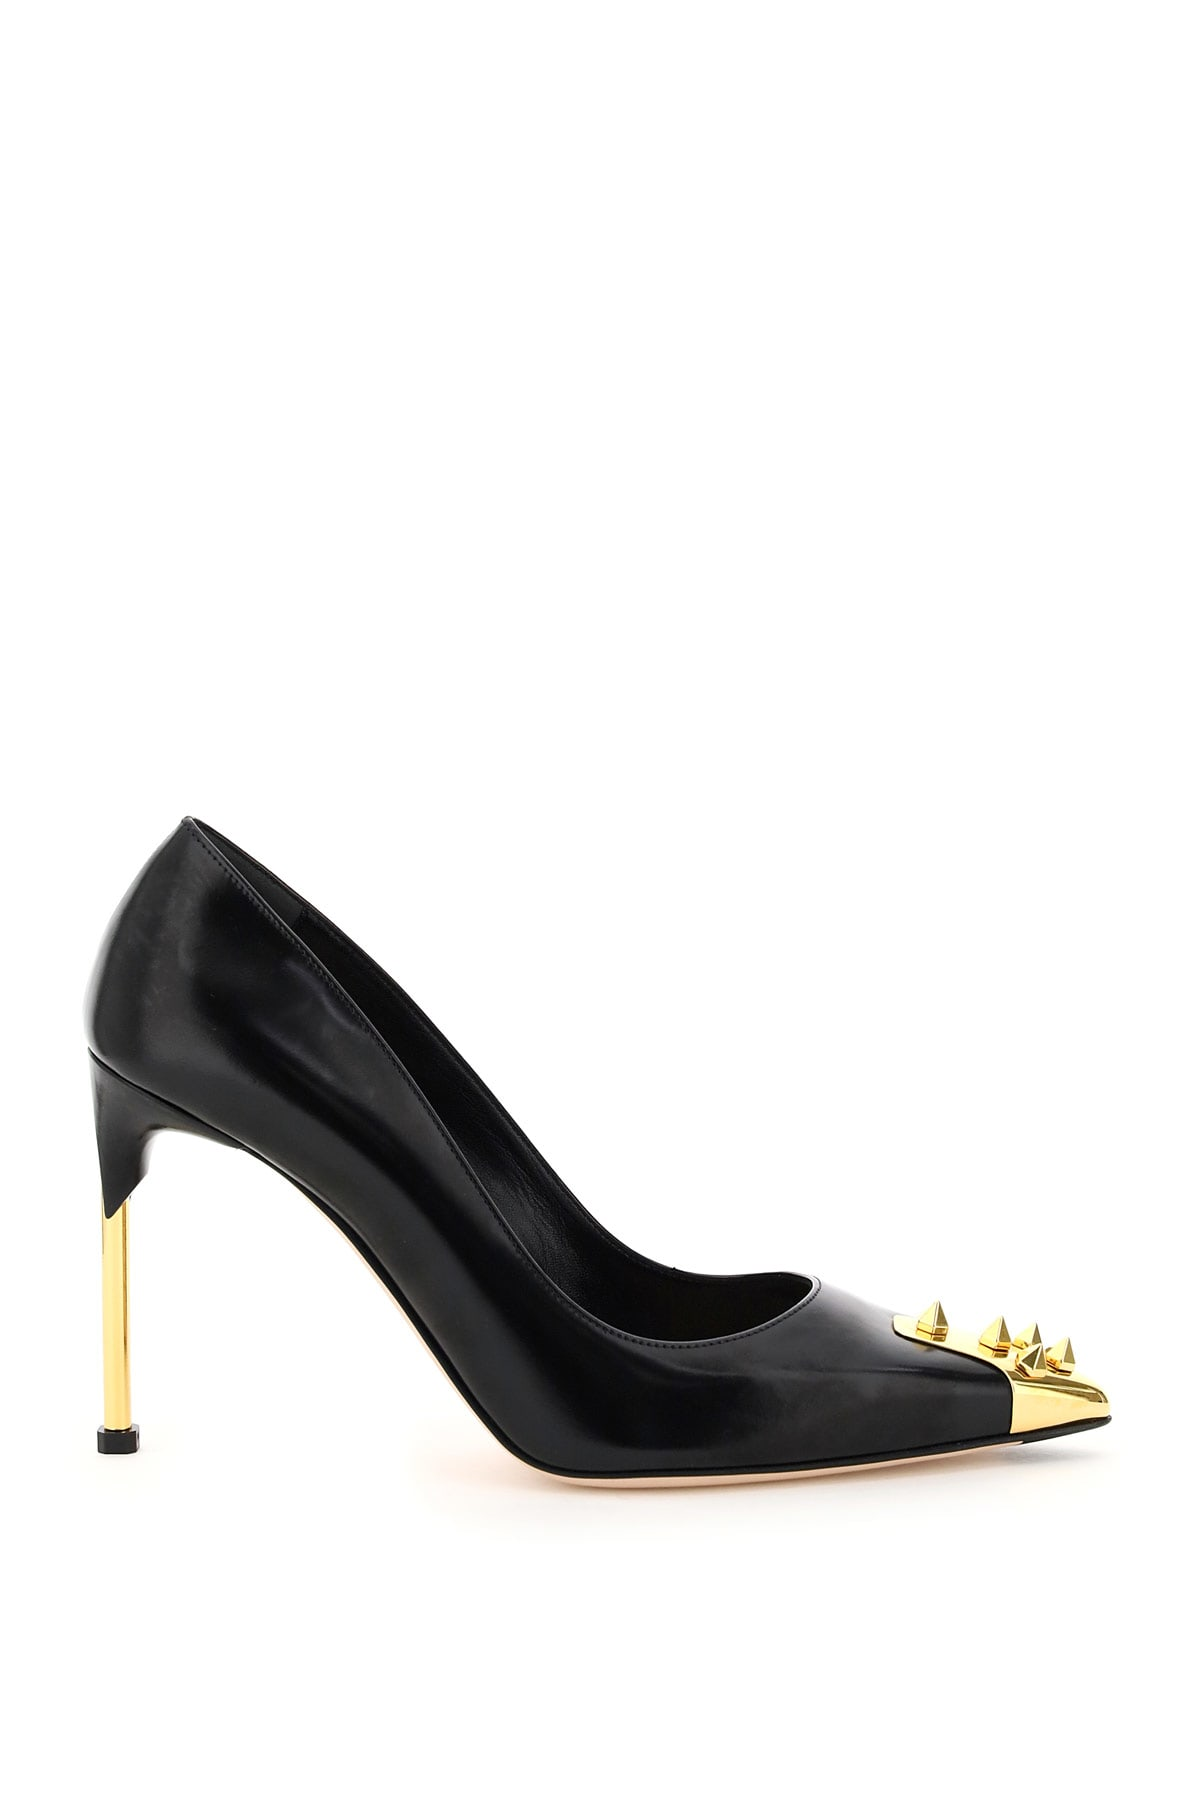 Alexander Mcqueen Leathers LEATHER PUMPS WITH STUDS